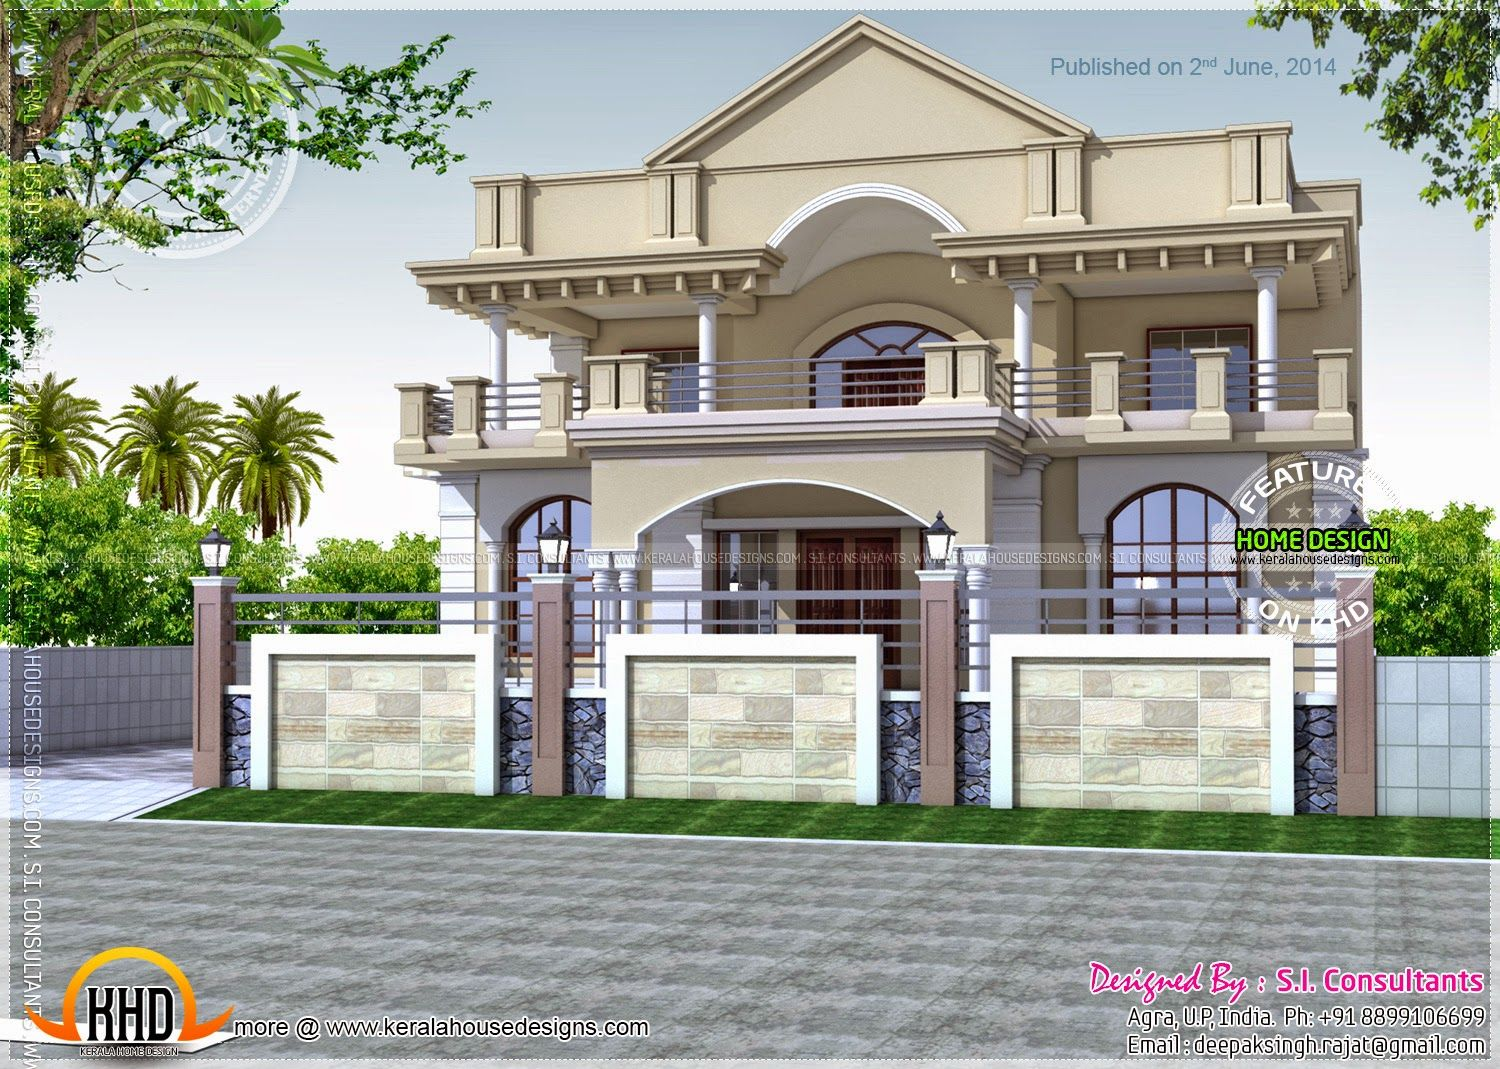 North indian exterior house indian house plans Homes design images india